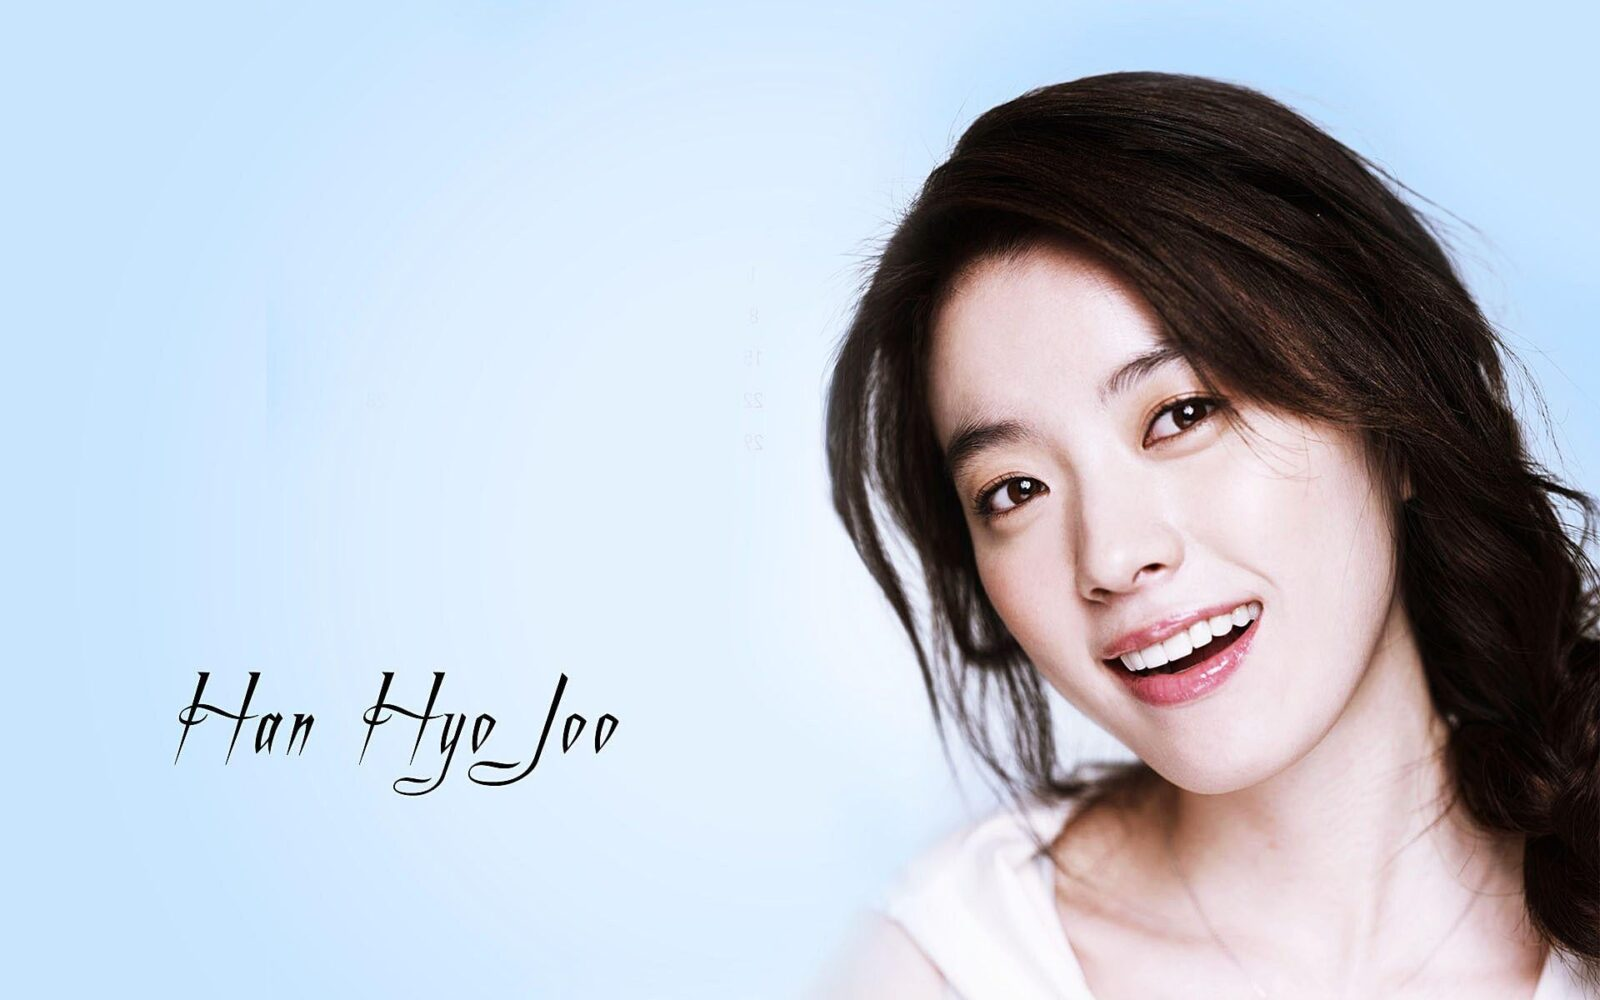 http://wallpapersqq.net/wp-content/uploads/2015/12/Han-Hyo-Joo.jpg